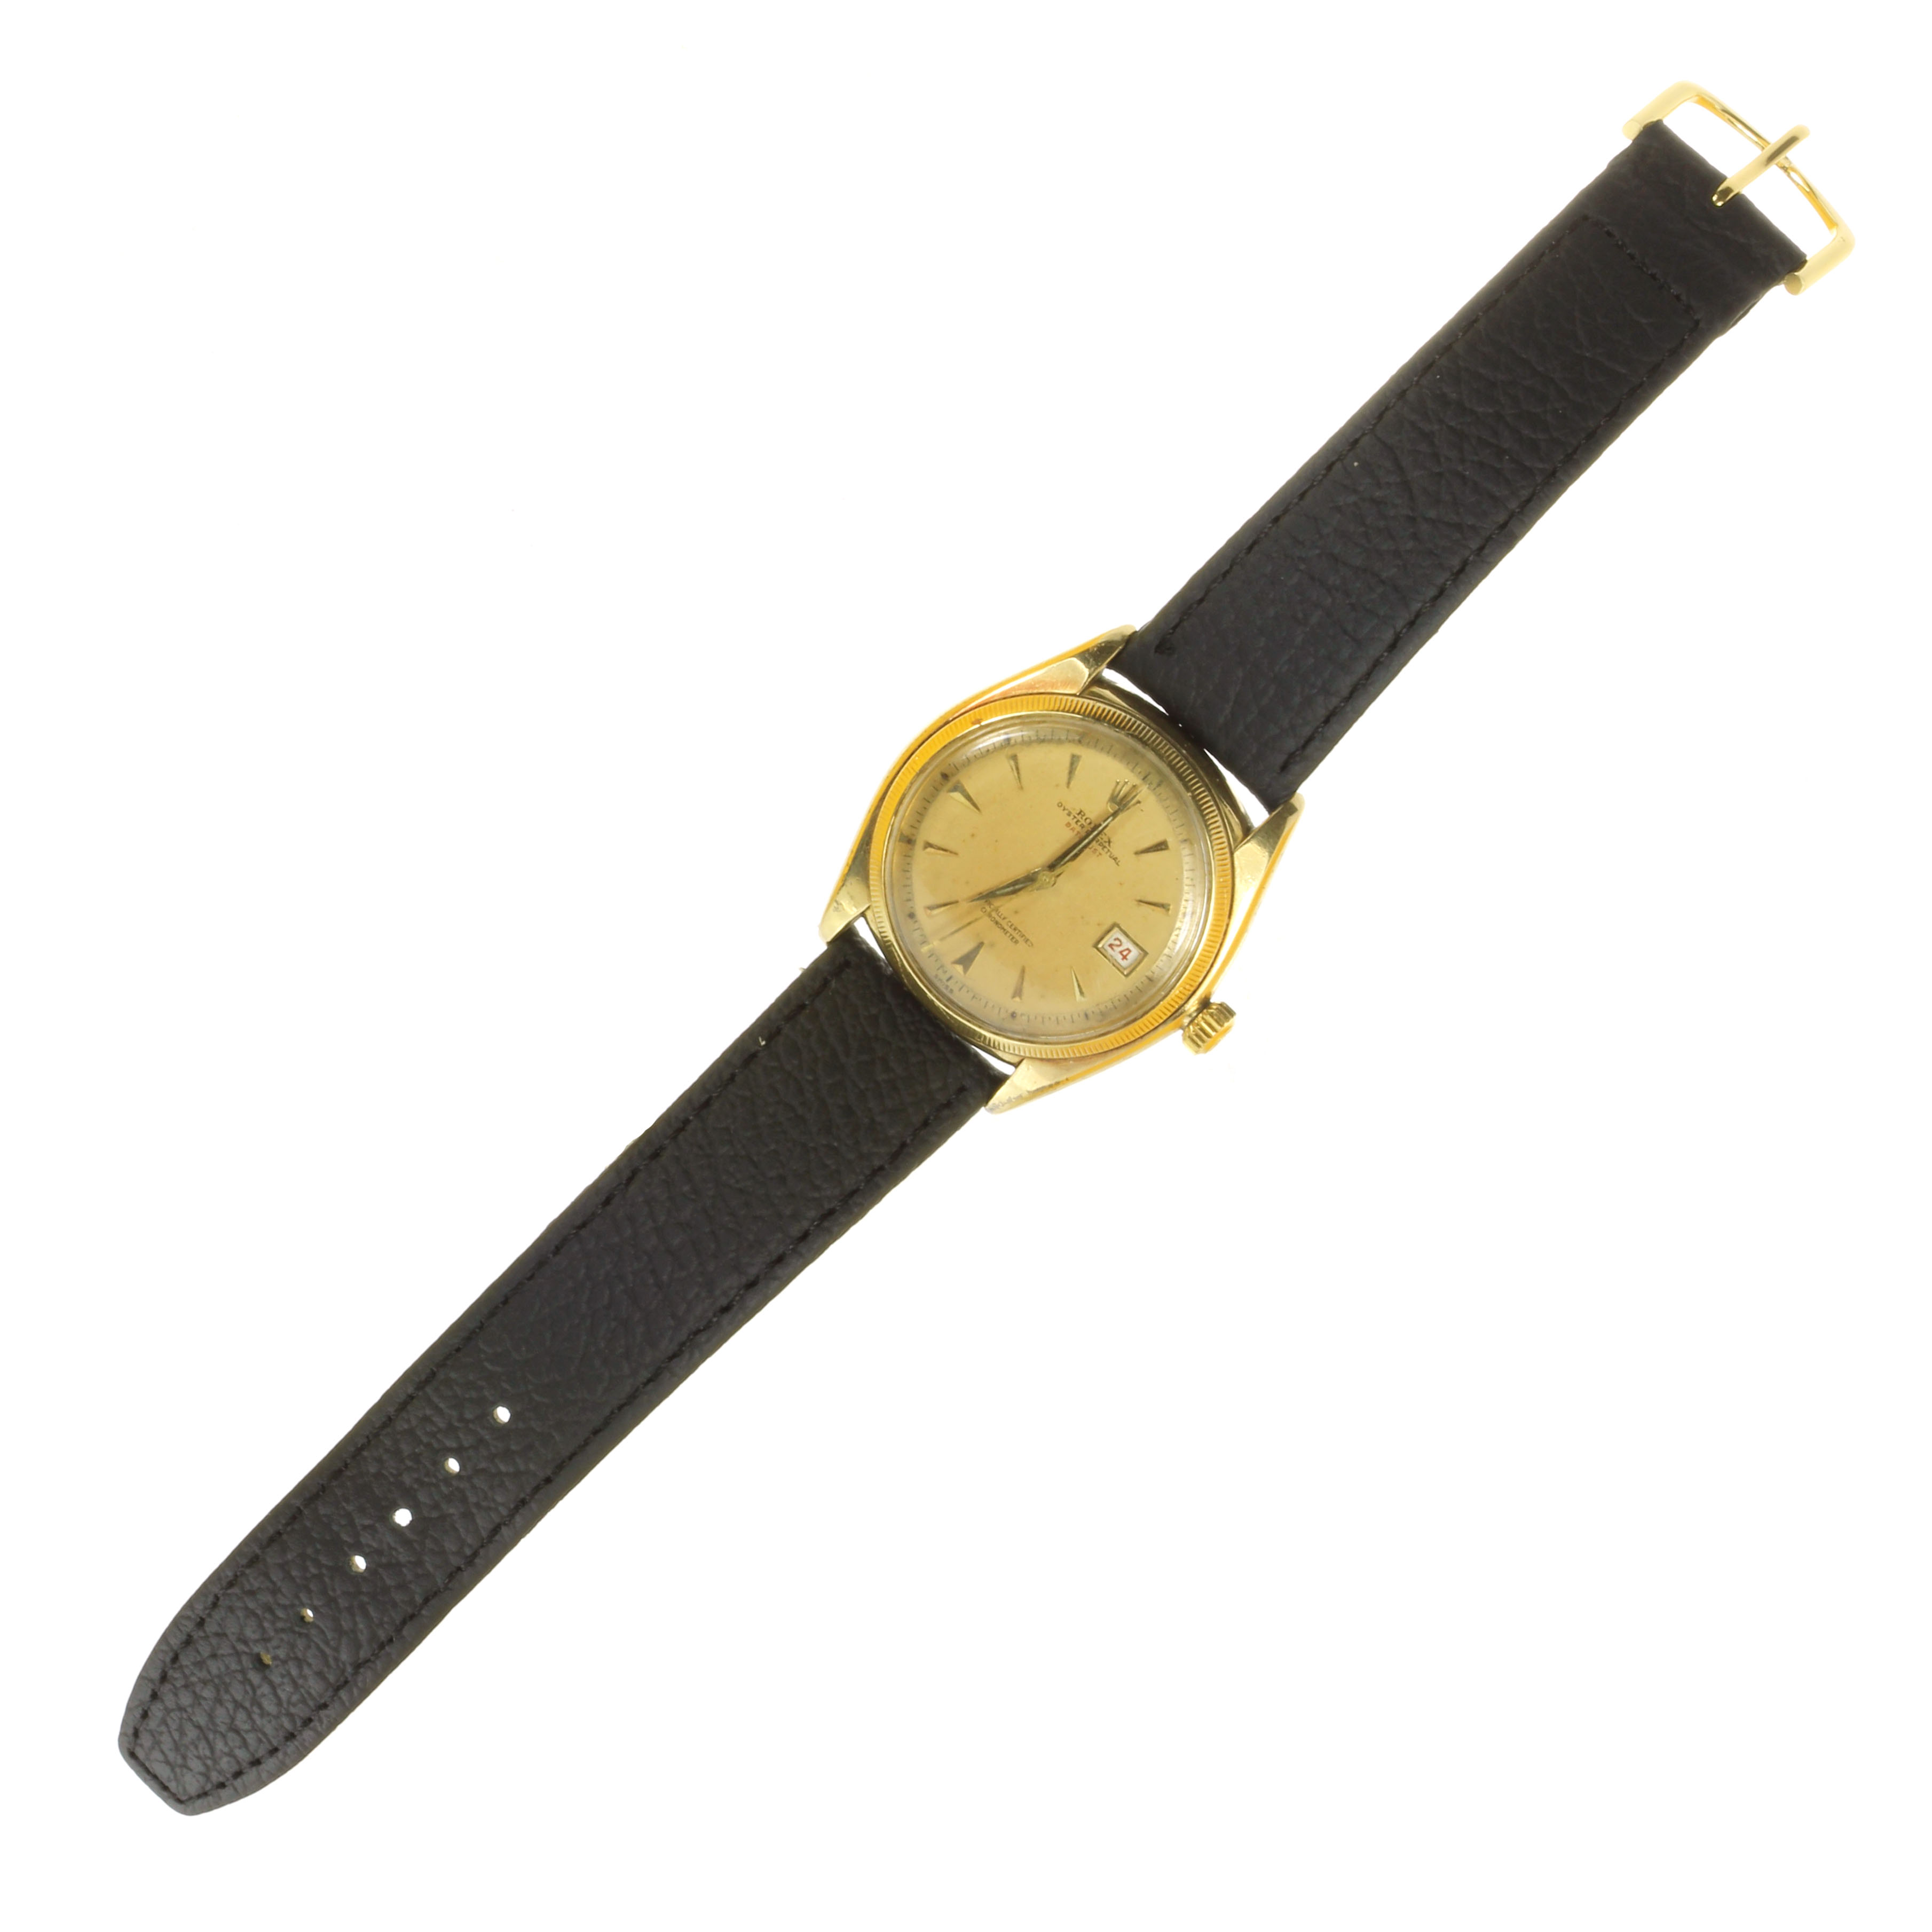 Los 35 - A VINTAGE ROLEX OYSTER PERPETUAL DATEJUST 'BIG BUBBLE' WRIST WATCH, CIRCA 1965 in 18ct yellow